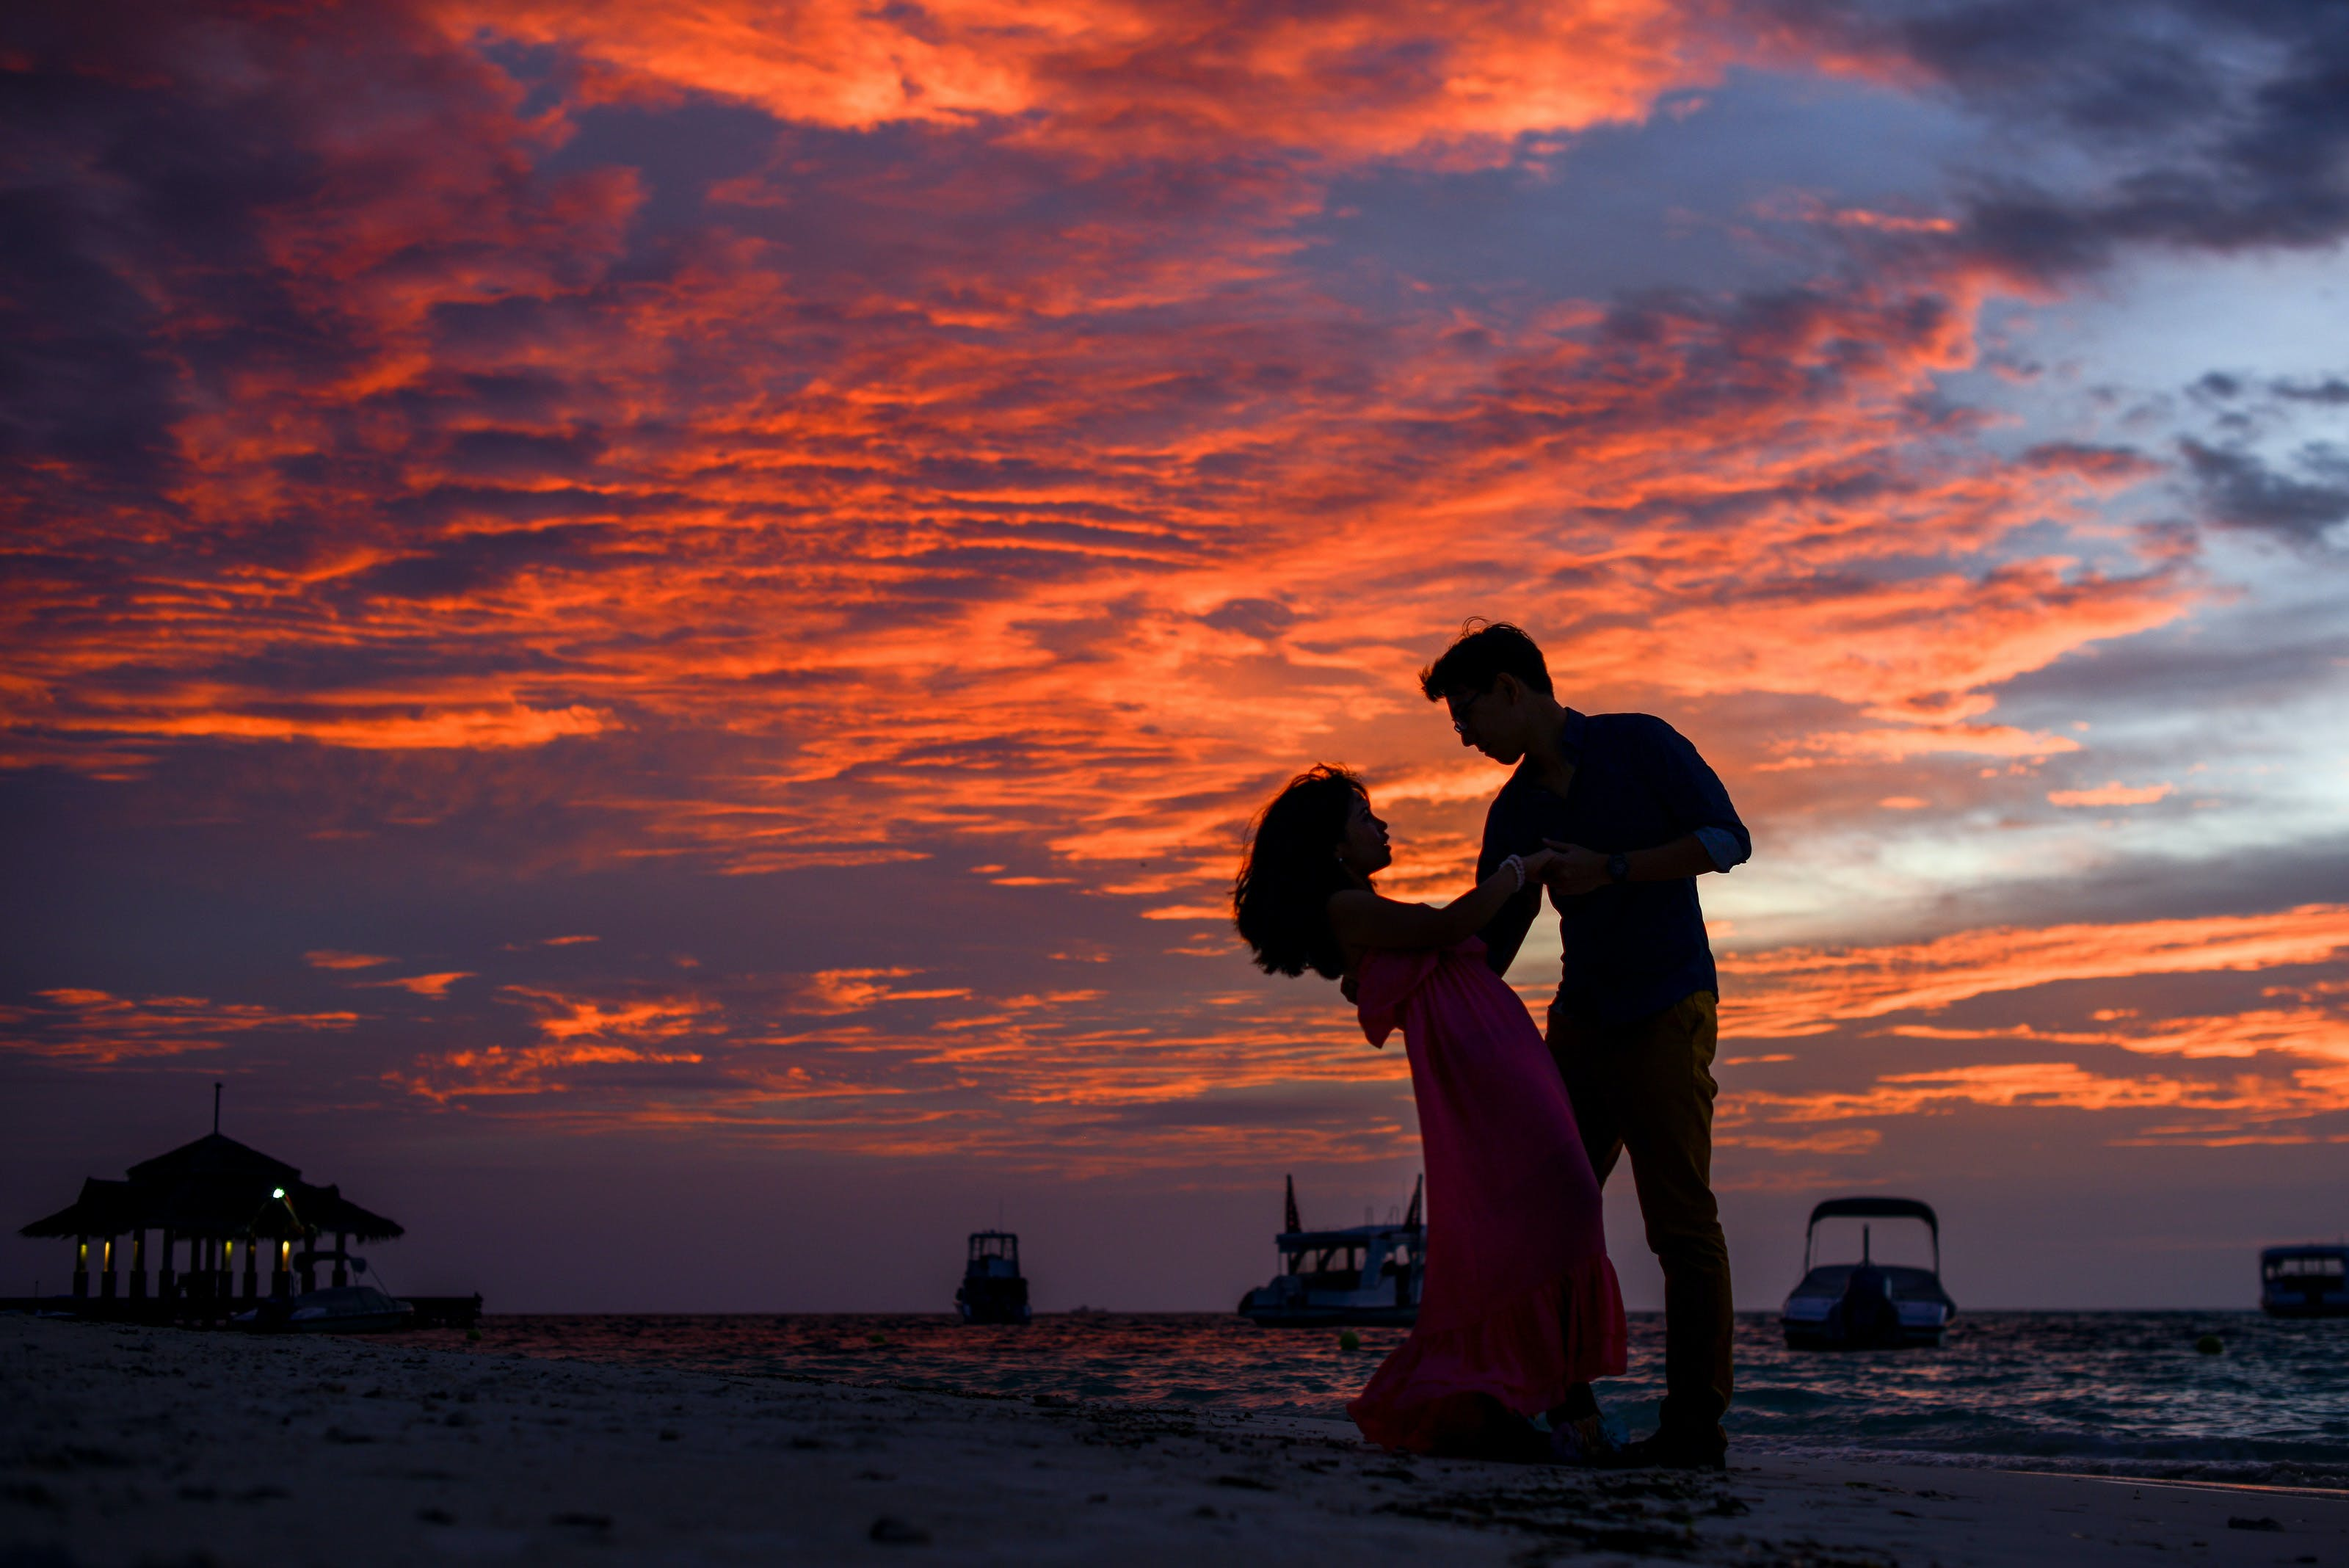 Man and Woman on Beach during Sunset